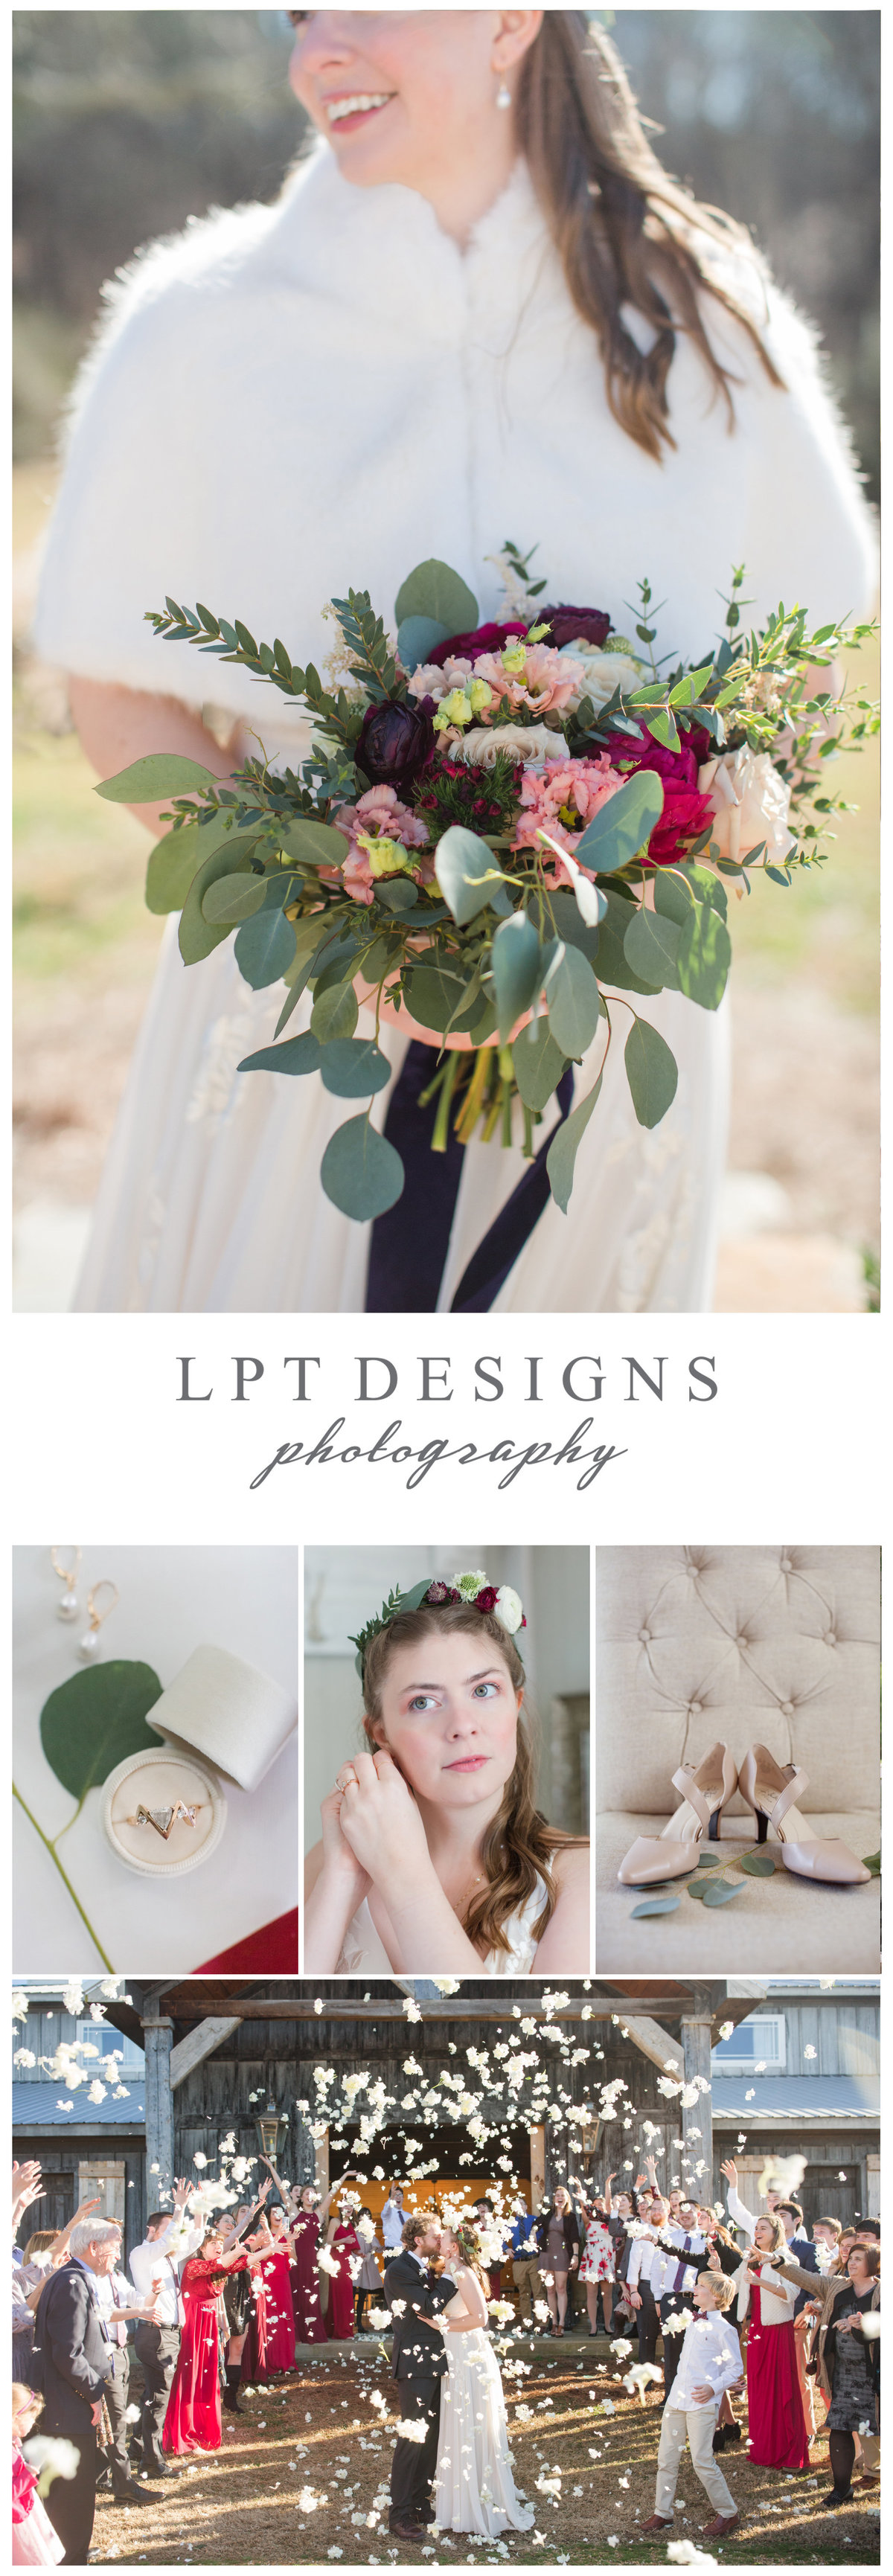 lpt_designs_photography_lydia_thrift_gadsden_alabama_fine_art_wedding_photographer_aw_1